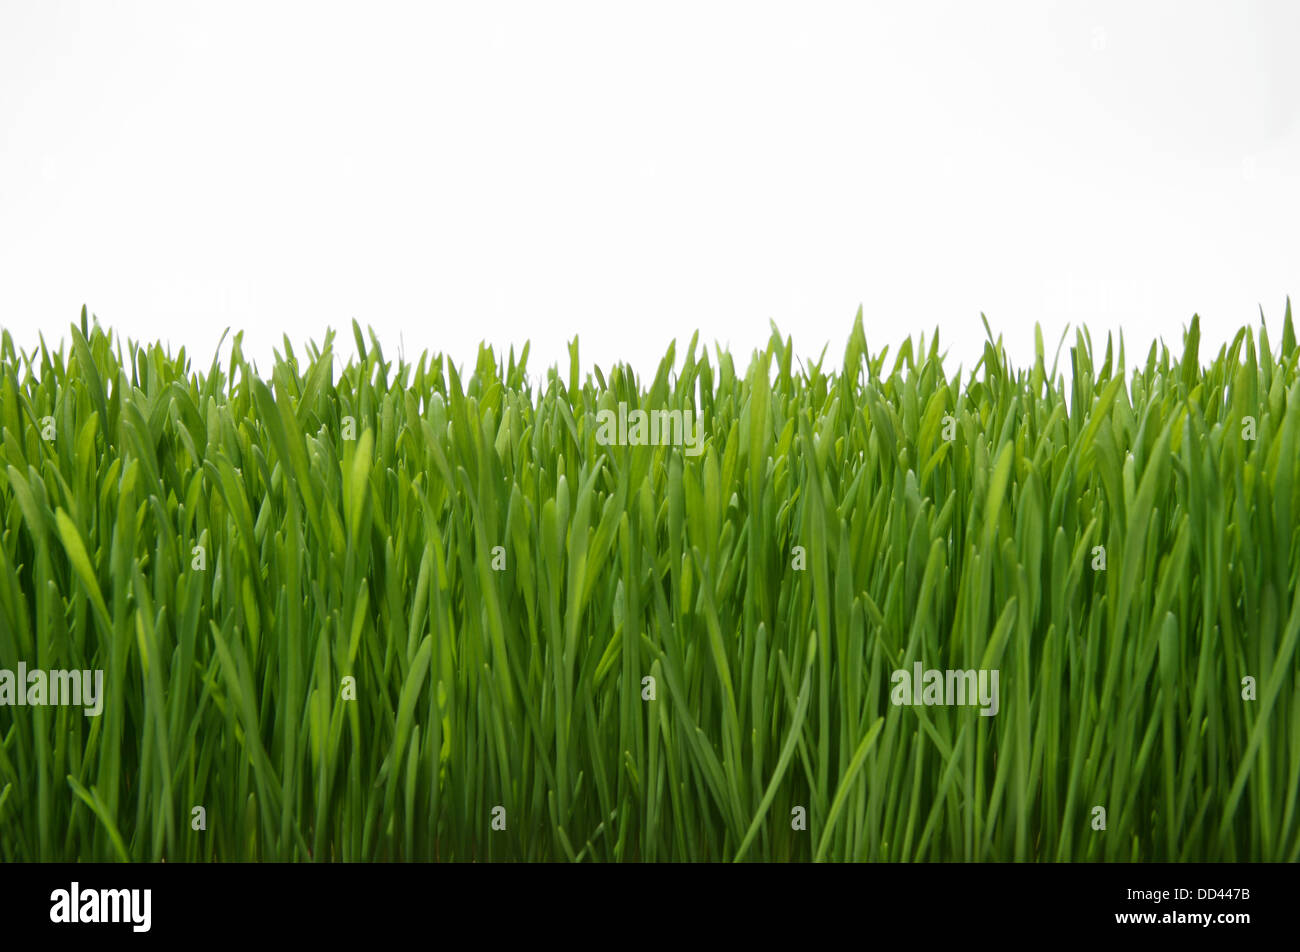 A section of growing green grass on a white background - Stock Image